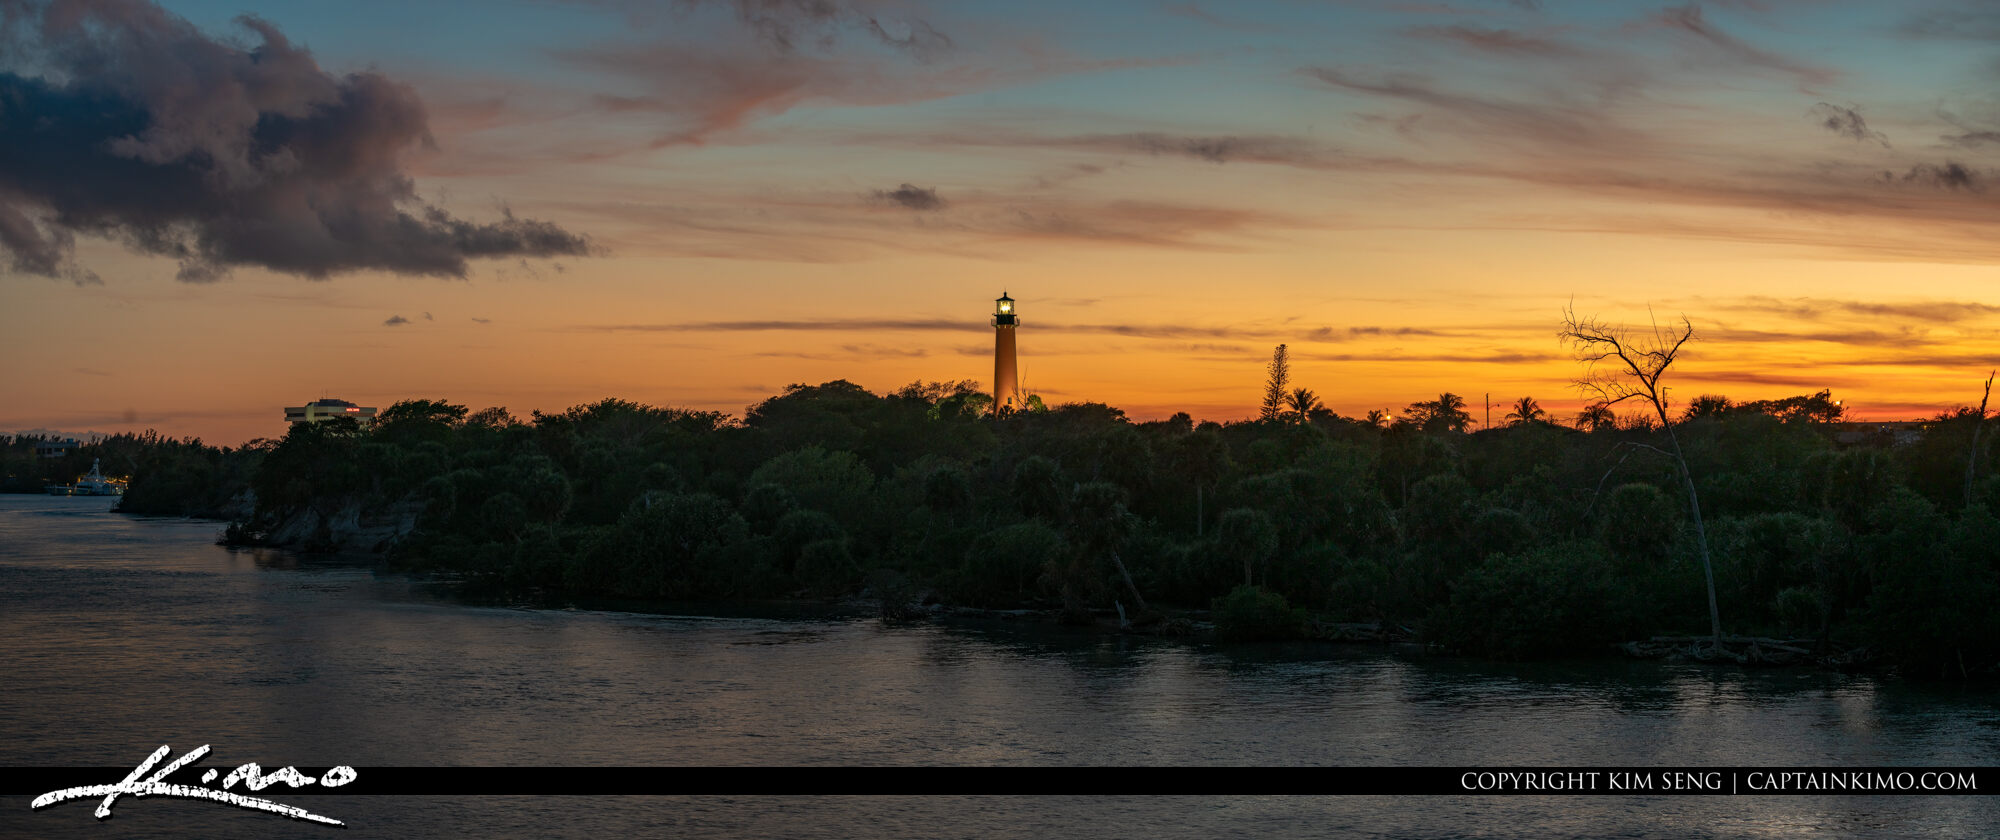 Jupiter Lighthouse Sunset Waterway Pano View